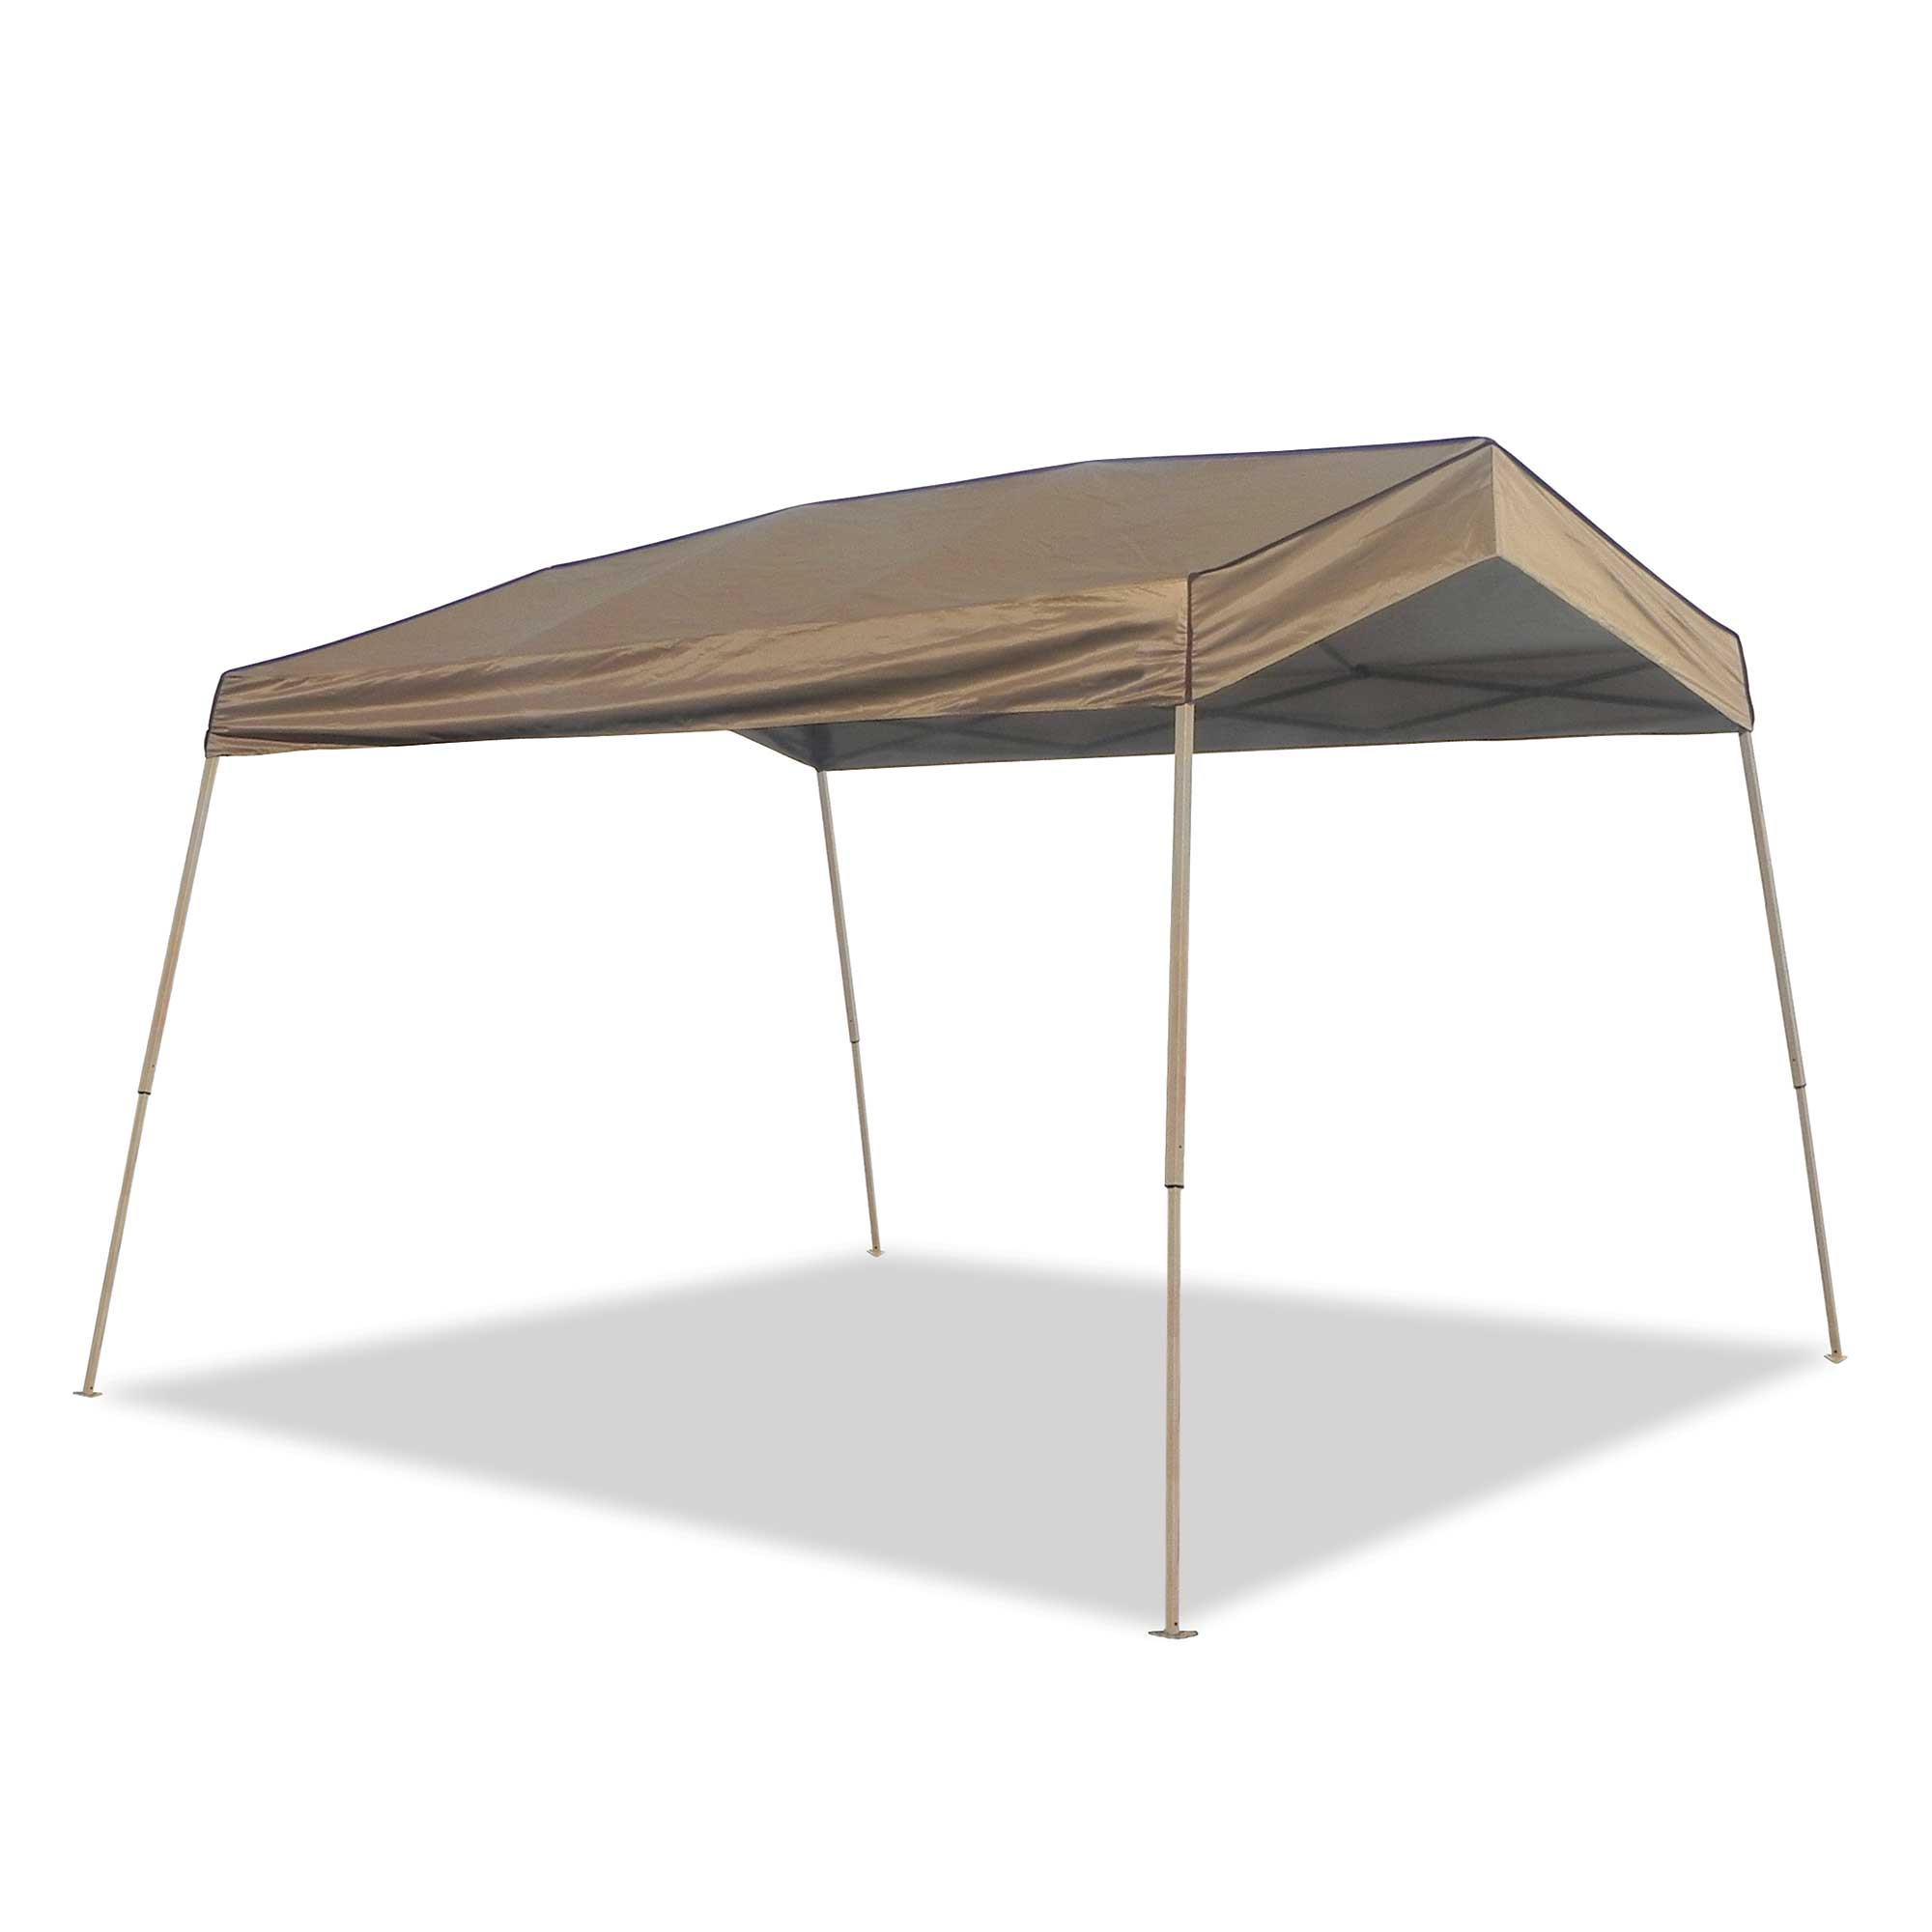 brand new 3ba84 c6237 Details about Z-Shade 12 x 14 Foot Panorama Instant Pop Up Canopy Tent  Outdoor Shelter Tent